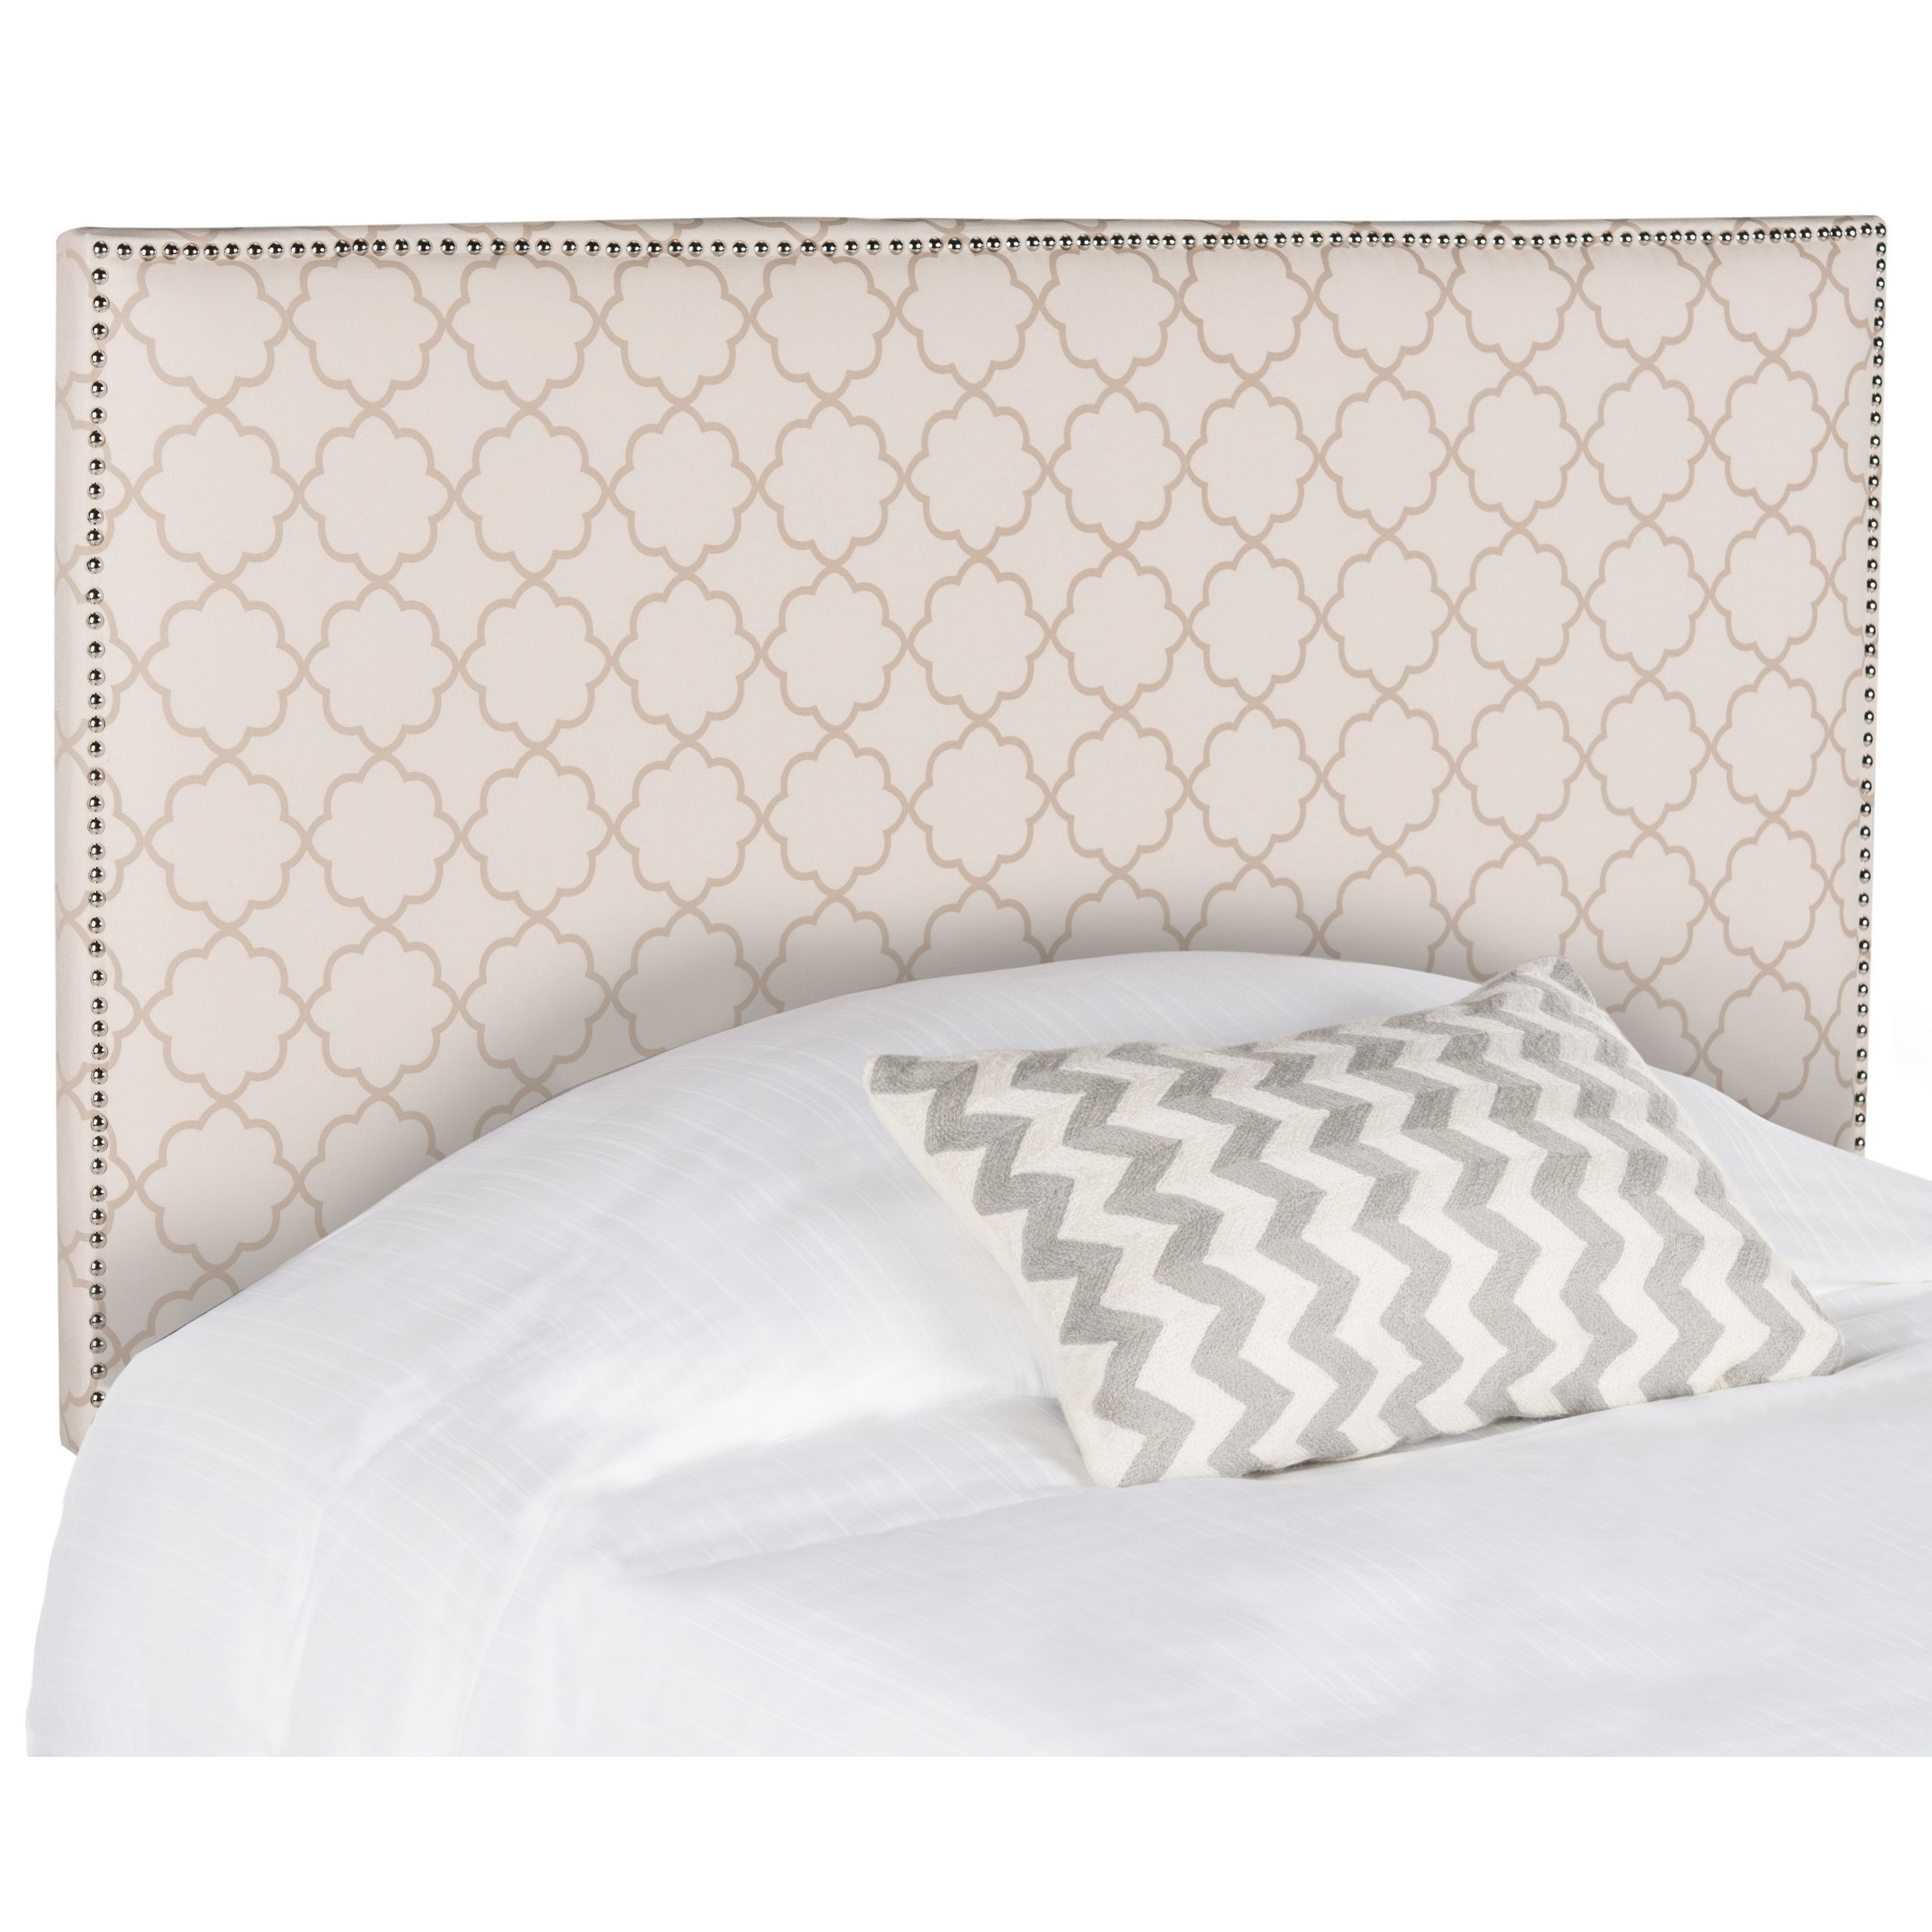 painted pink headboard attractive combined bolt contemporary diy ideas fabulous king by well also pictures for sideboard trends stained headboards square upholstered bedroom white cheap including as fabric the tablecloths size